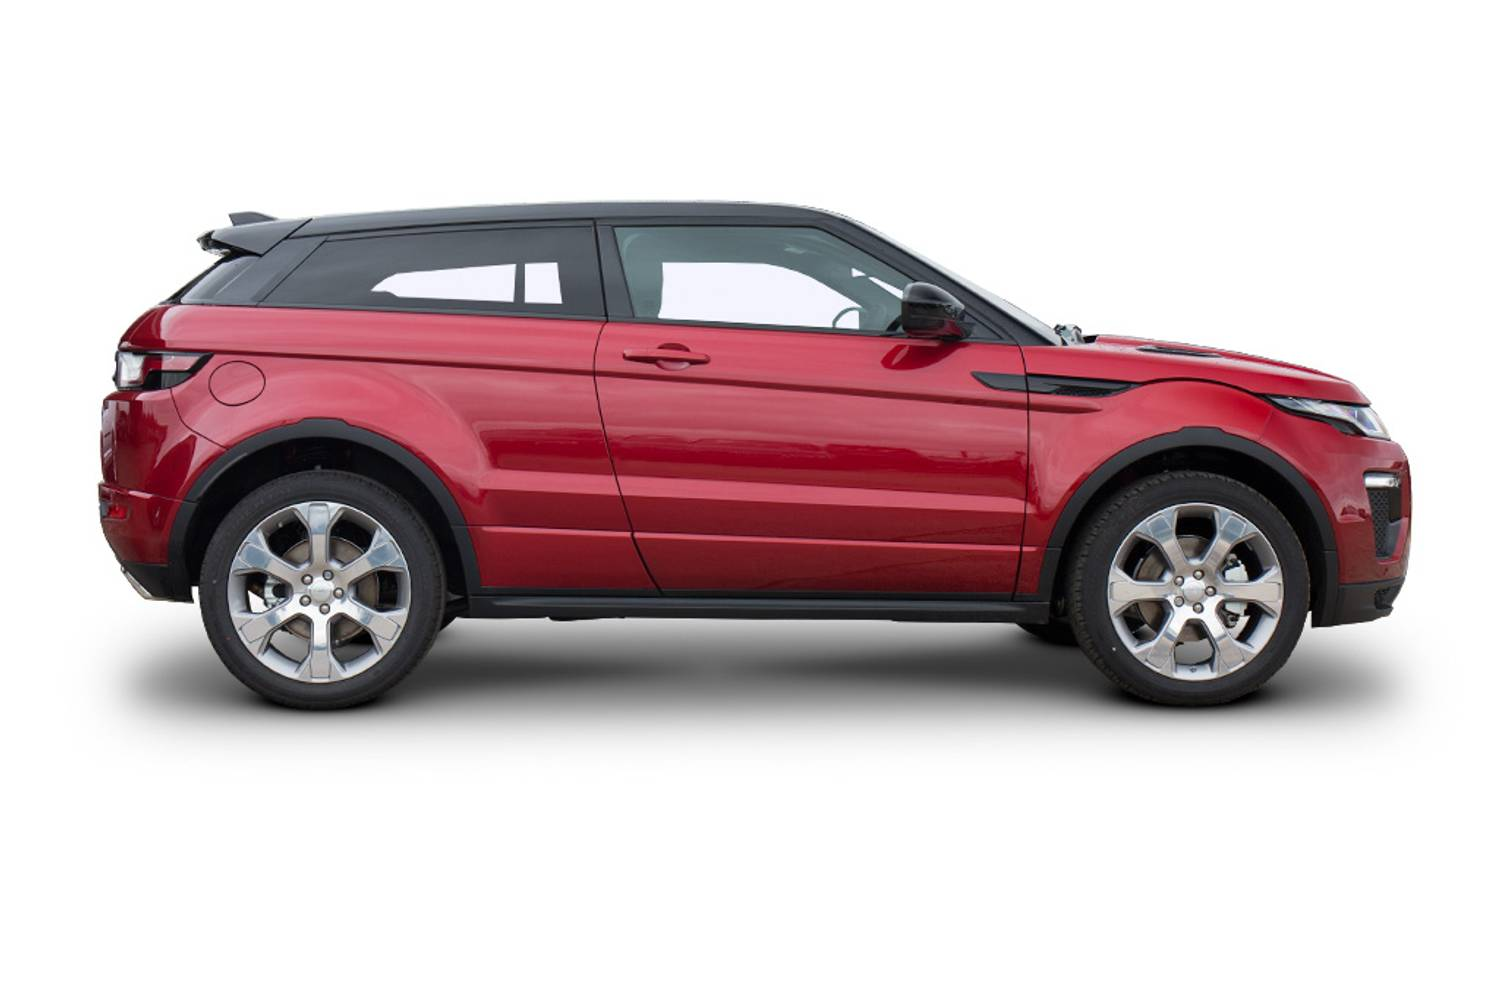 new range rover evoque diesel coupe 2 0 sd4 hse dynamic lux 3 door auto 2017 for sale. Black Bedroom Furniture Sets. Home Design Ideas